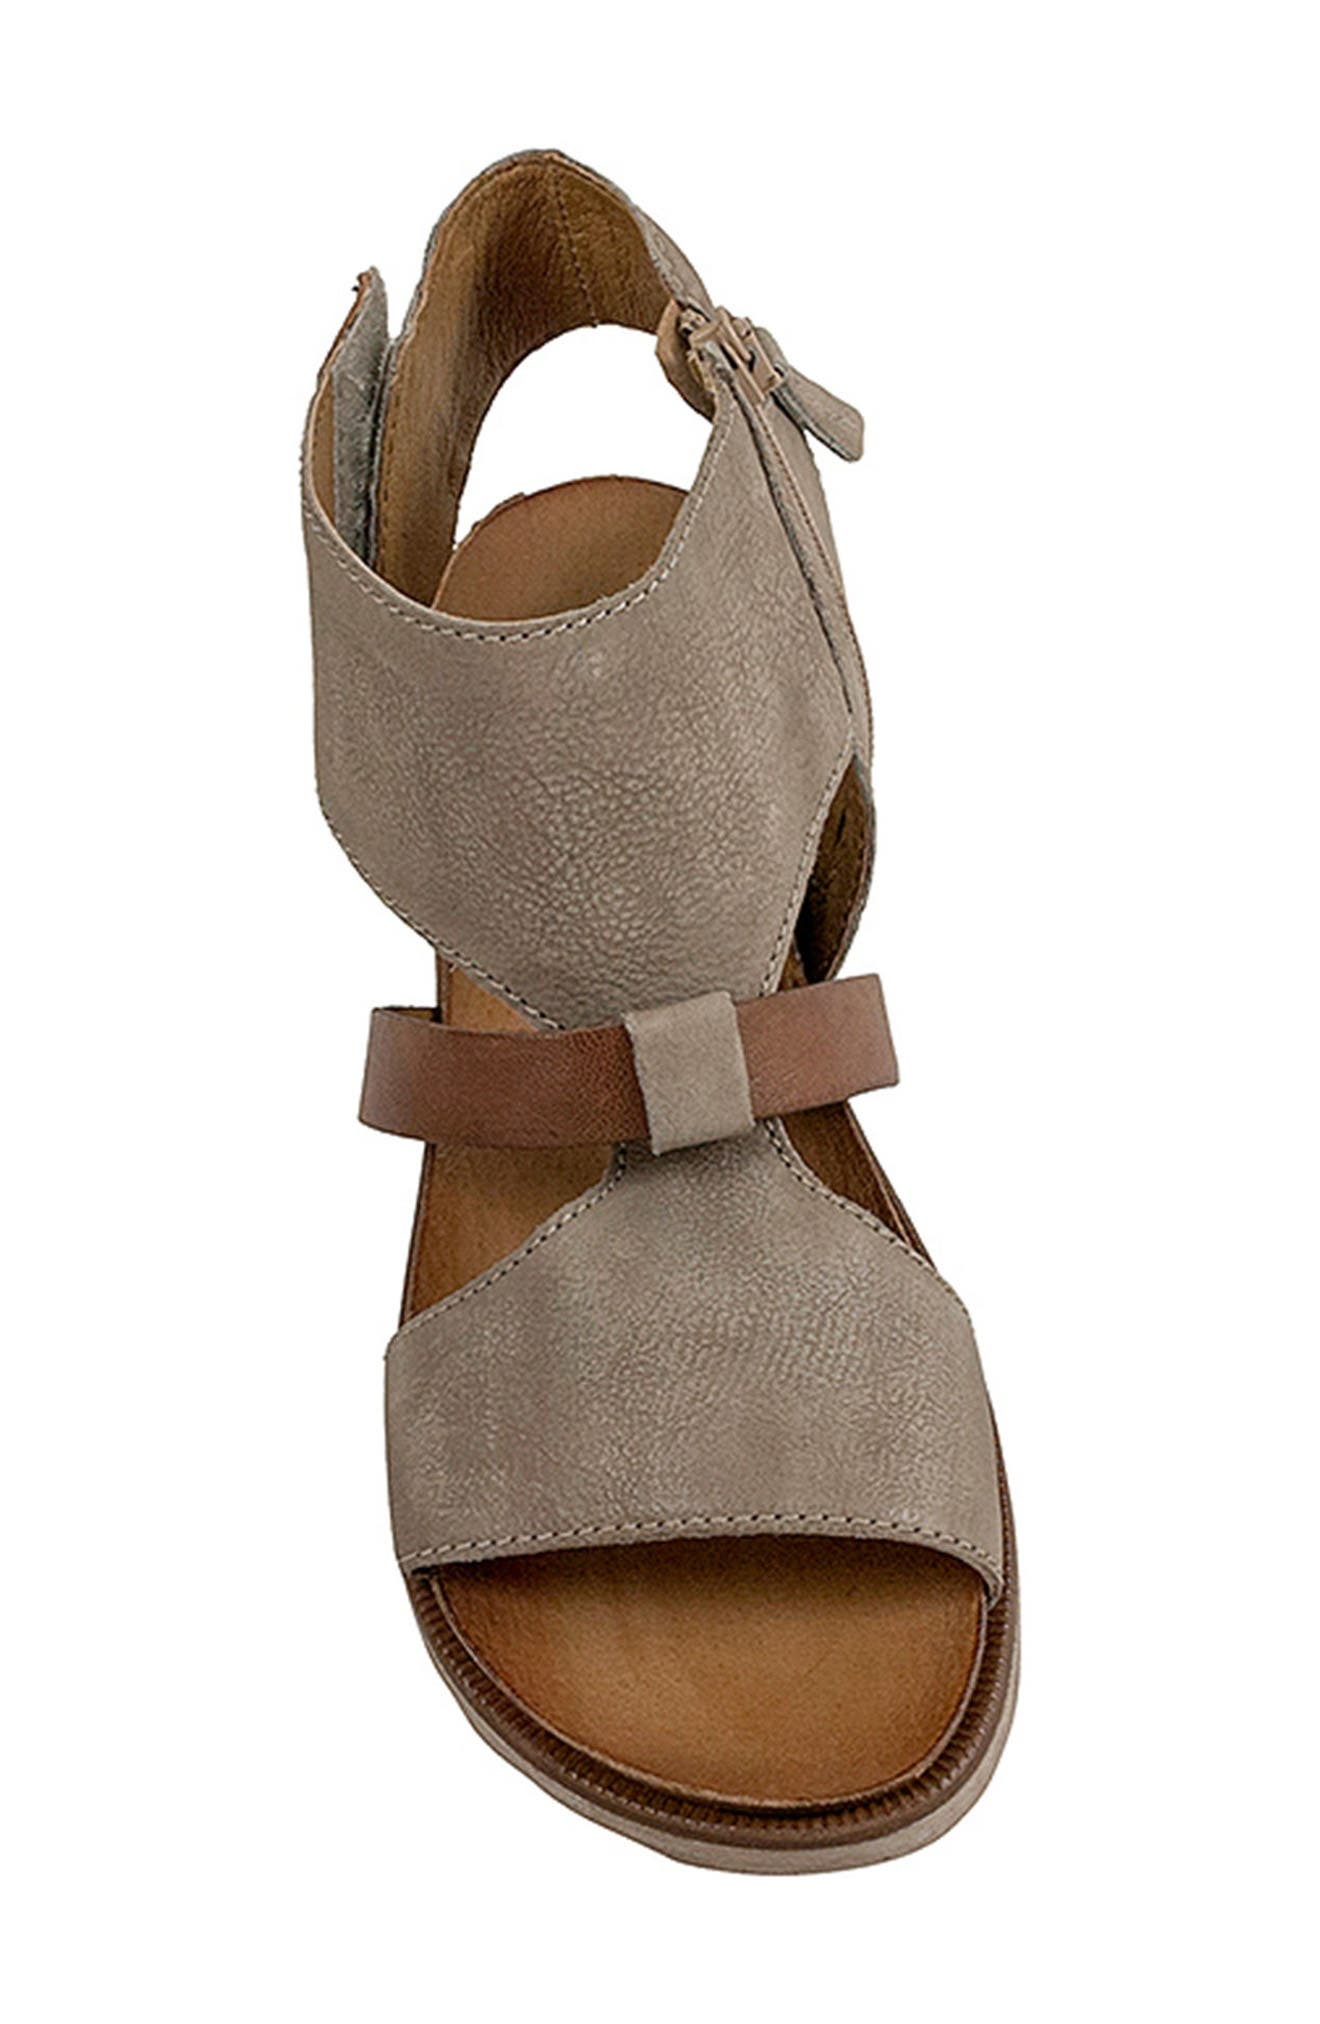 'Tamsyn' Sandal,                             Alternate thumbnail 5, color,                             Pebble Leather